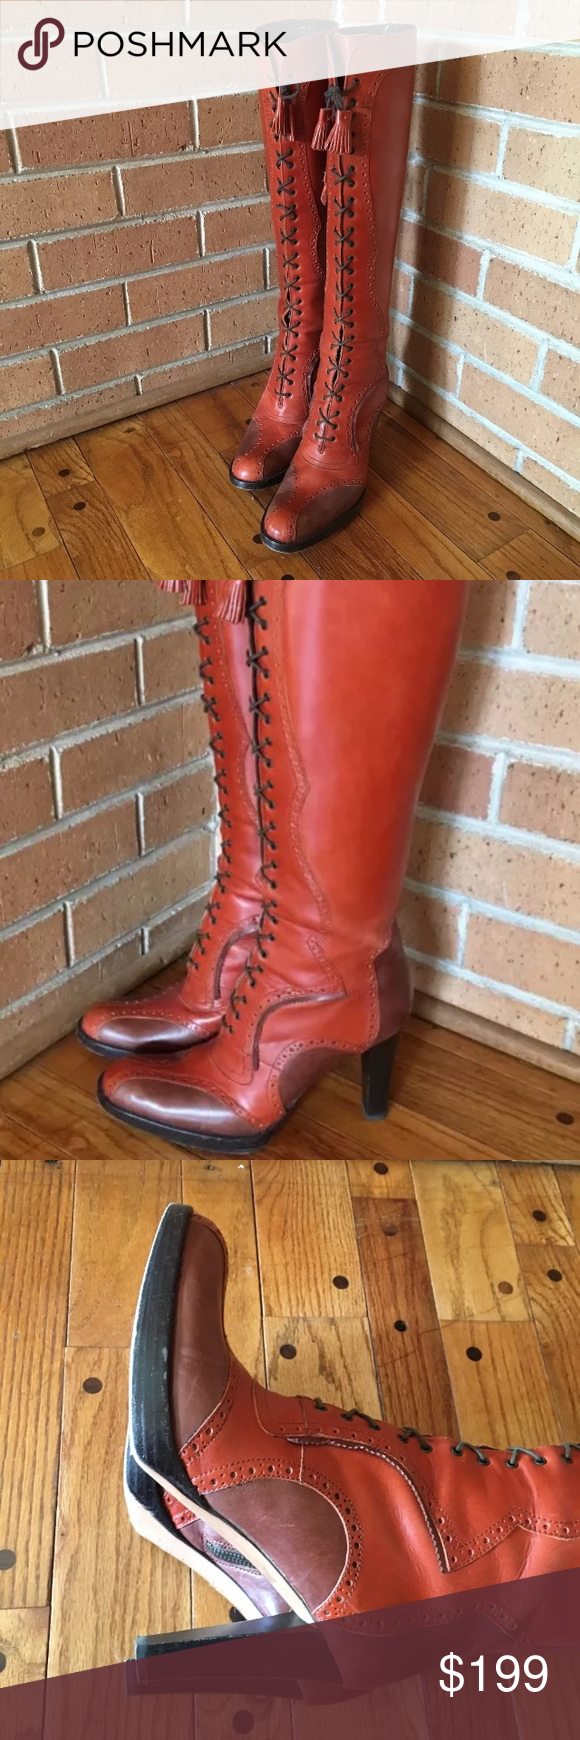 """Max Mara Leather Lace Up Riding Boots Beautiful gently worn Max Mara Riding Boots Inner zipper  Heel height 4"""" Please see all photos for condition REASONABLE OFFERS WILL BE CONSIDERED Max Mara Shoes Heeled Boots"""